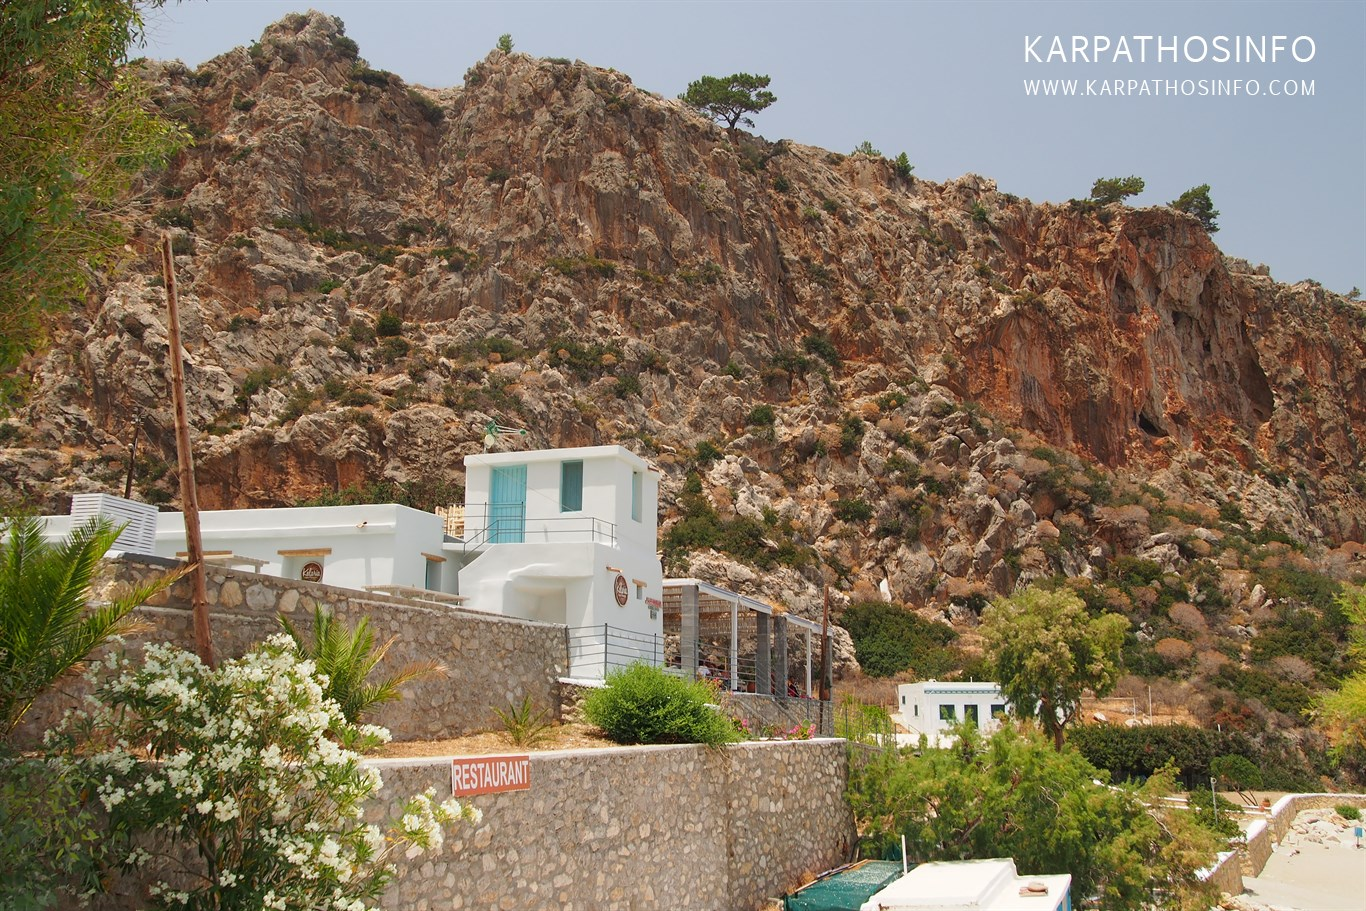 Kyra Panagia cliffs